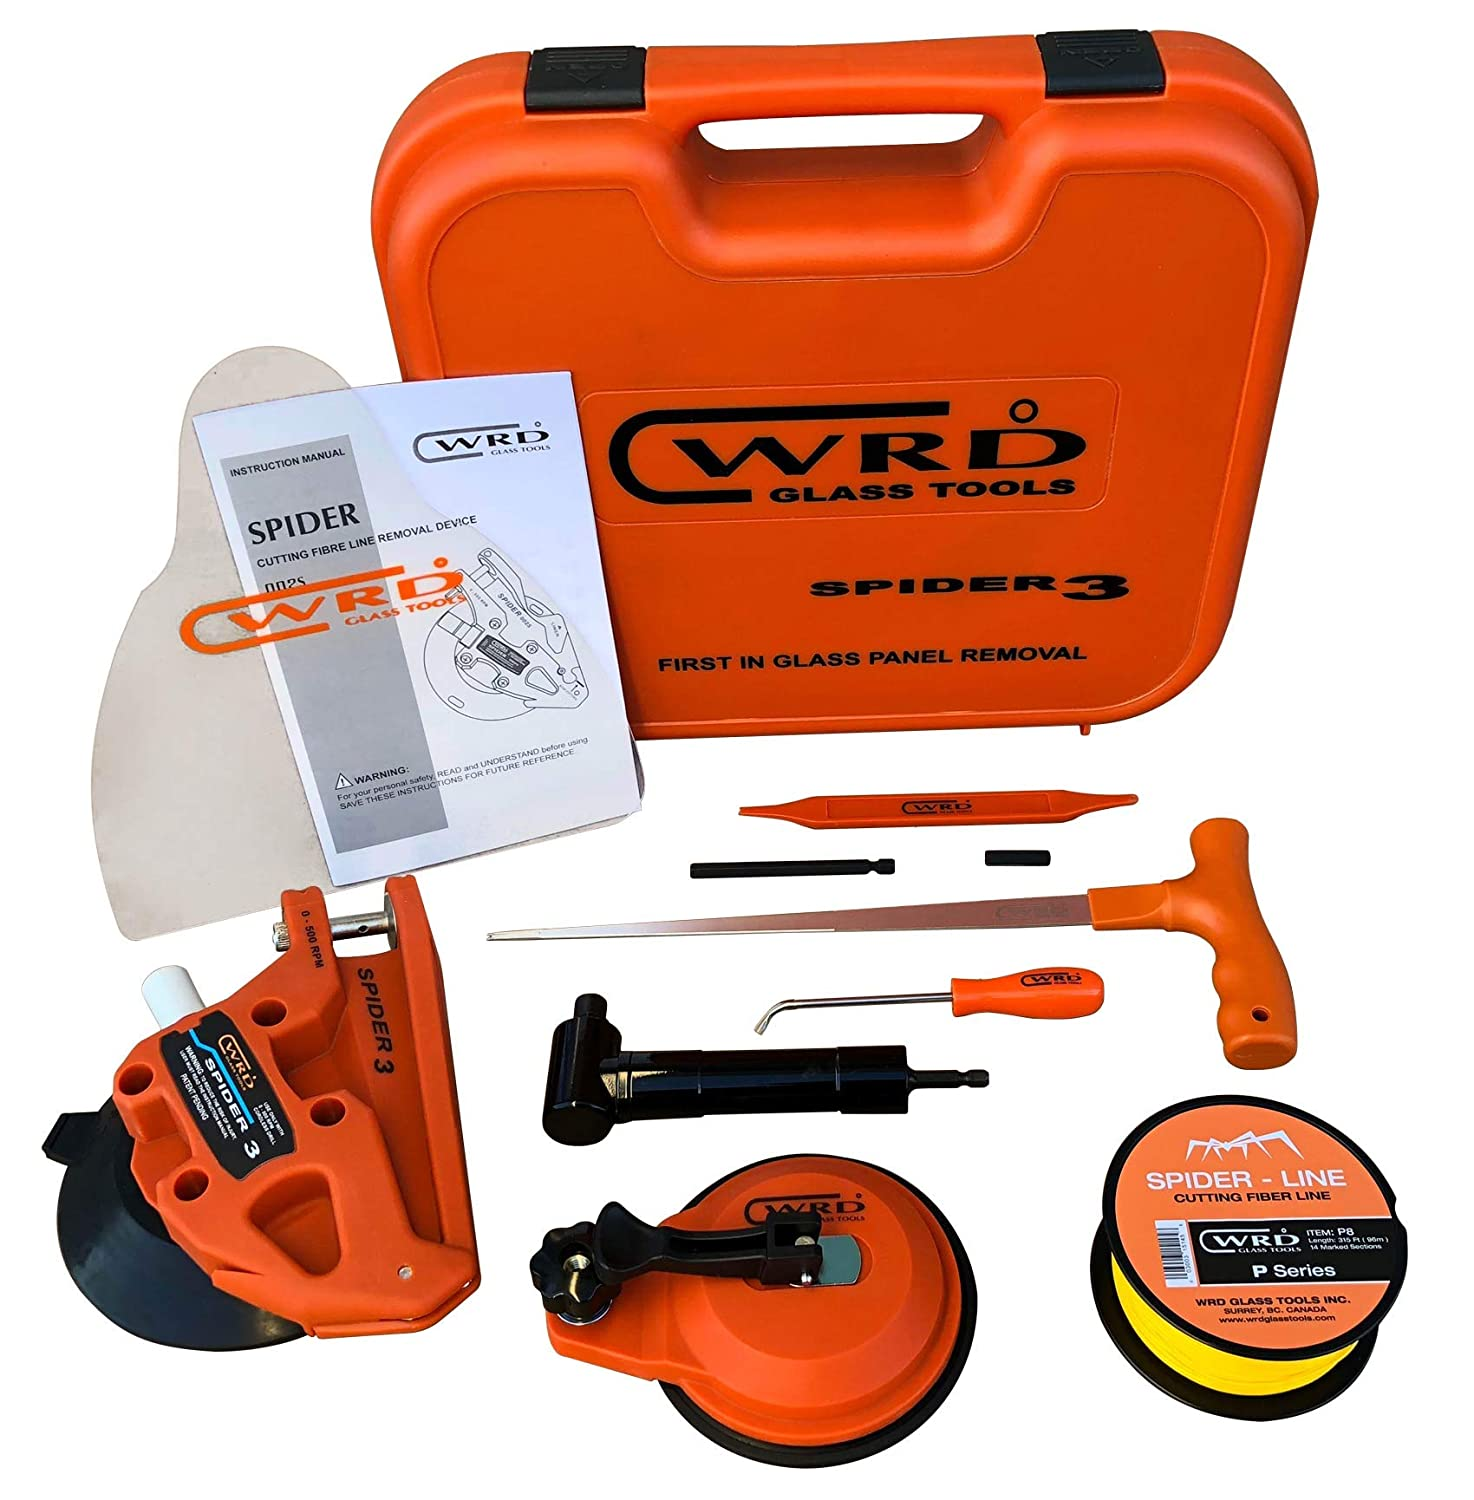 WRD S3 300W Spider 3 Kit 300 W Provides Safe and efficient auto Glass Panel Removal Windshield Removal kit